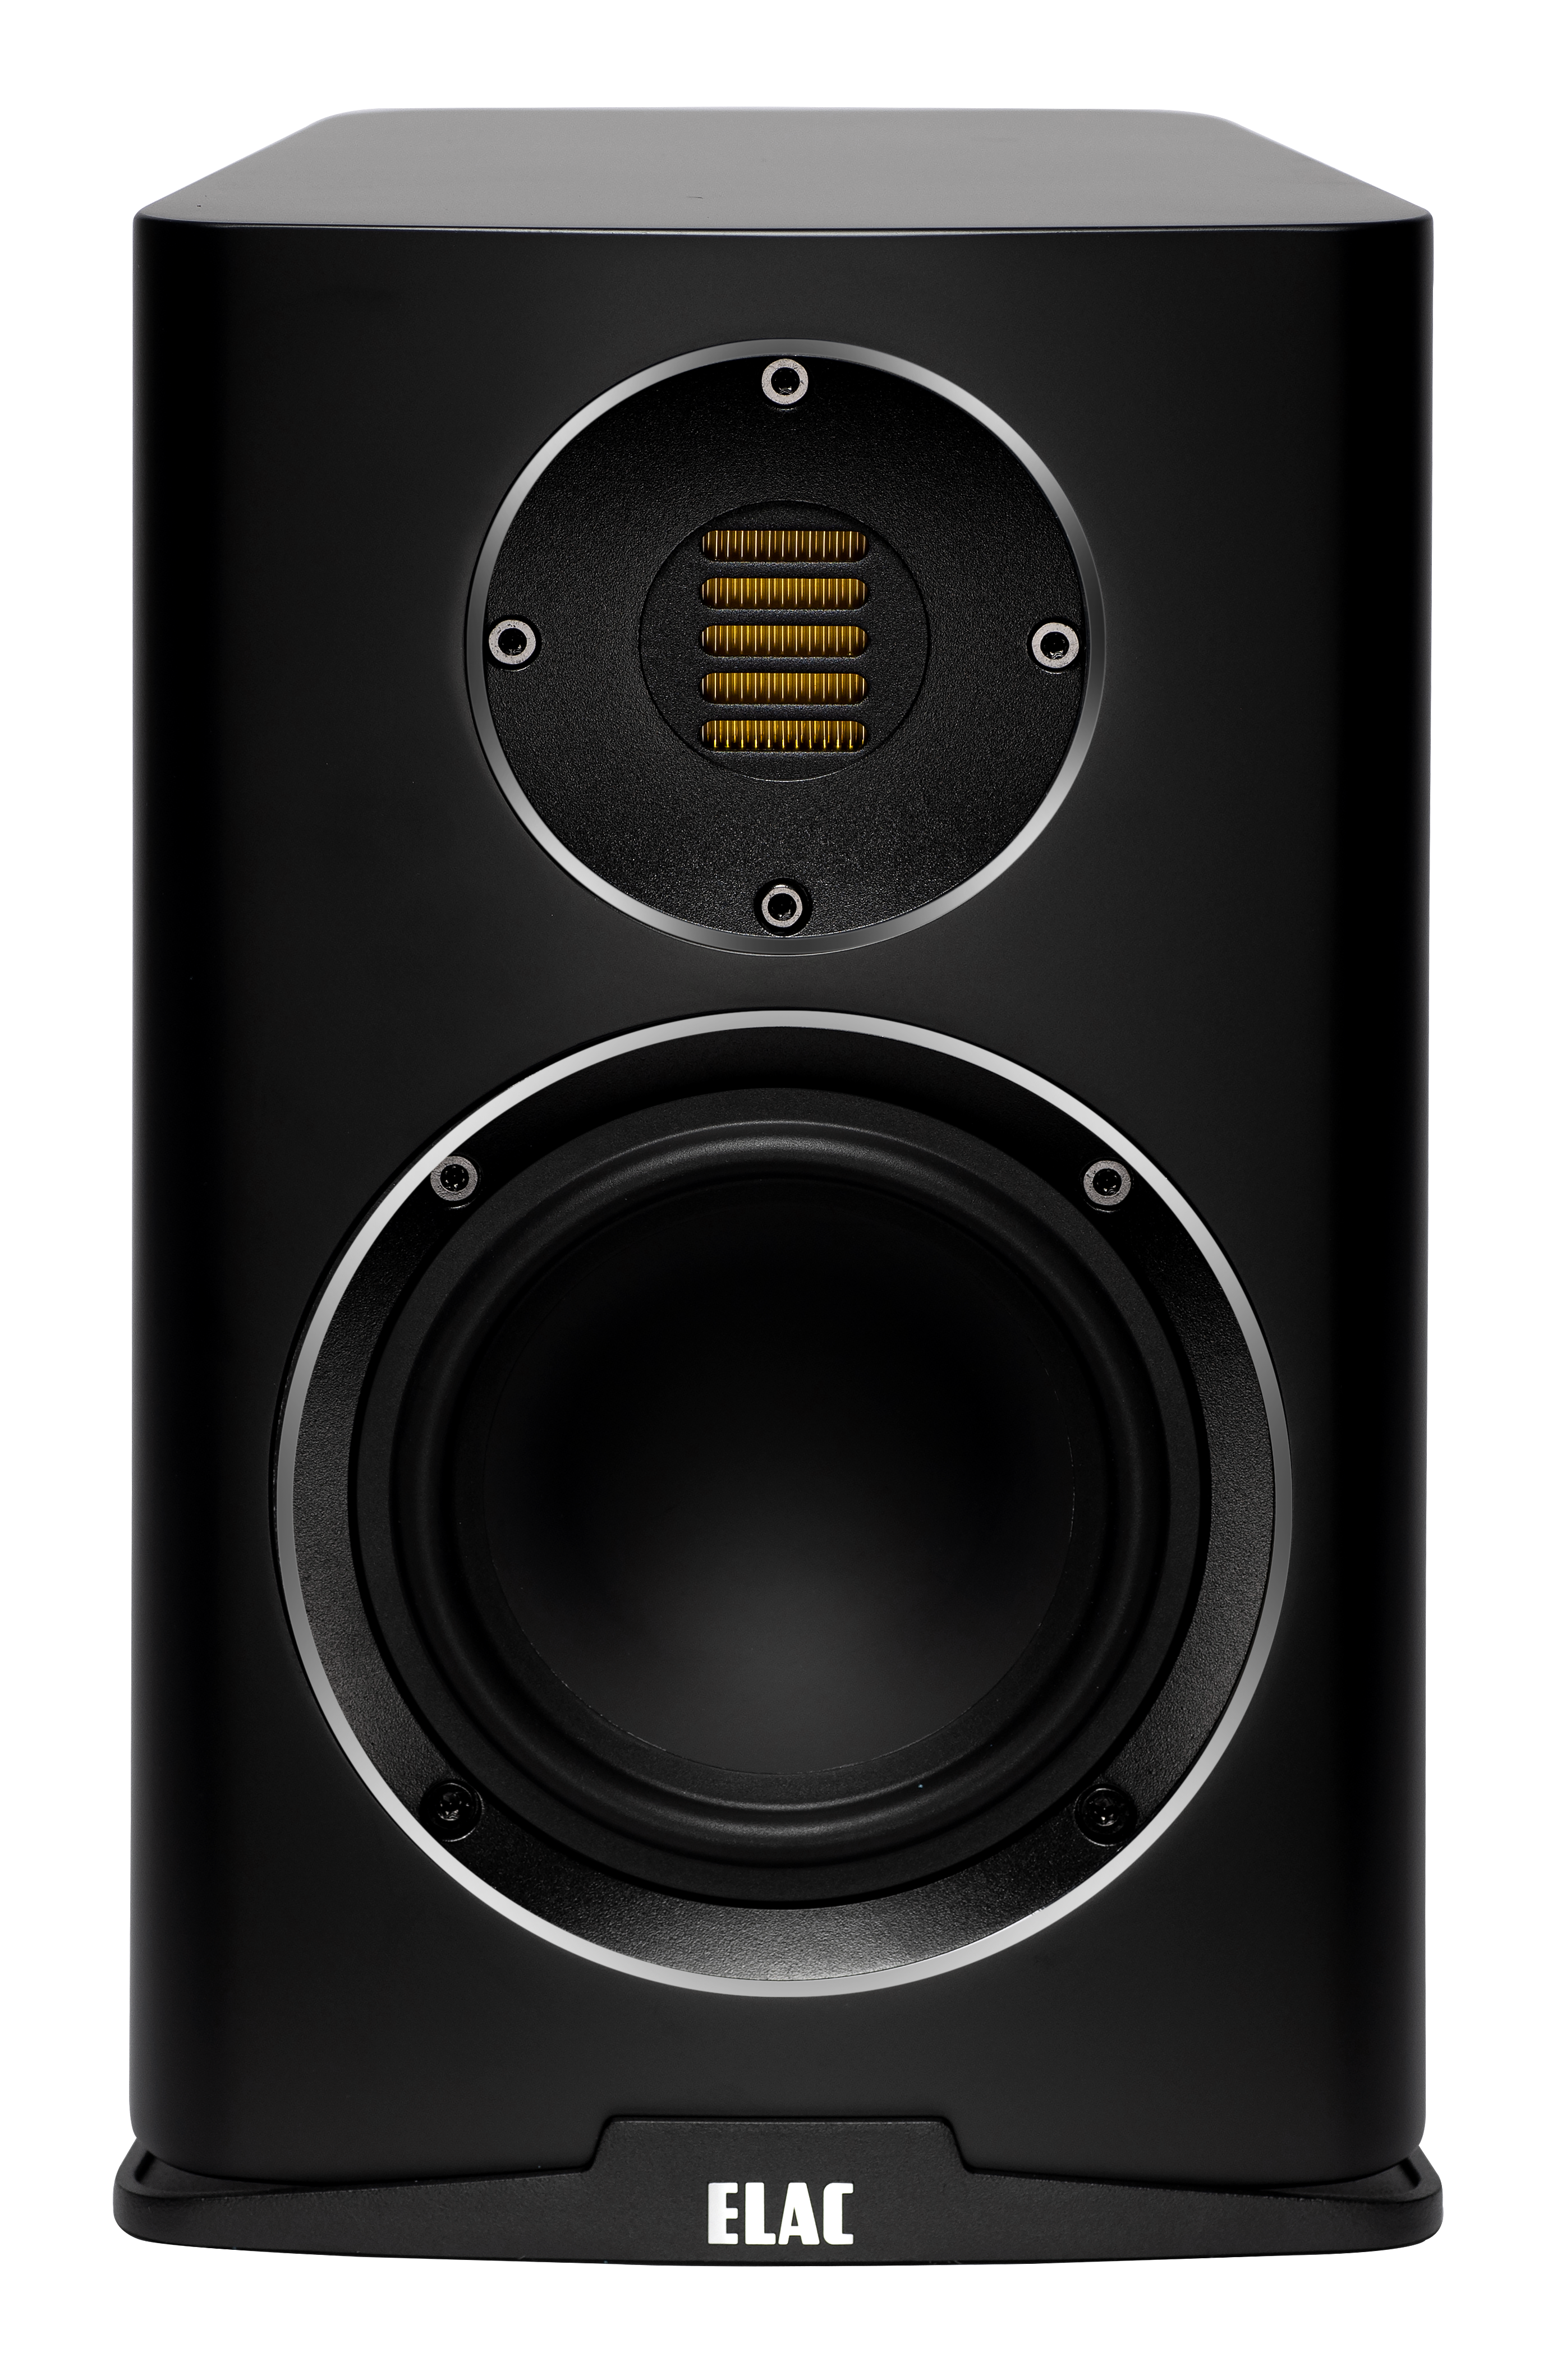 ELAC NEW Carina Speaker with Folded Jet Tweeter. At True Audiophile.